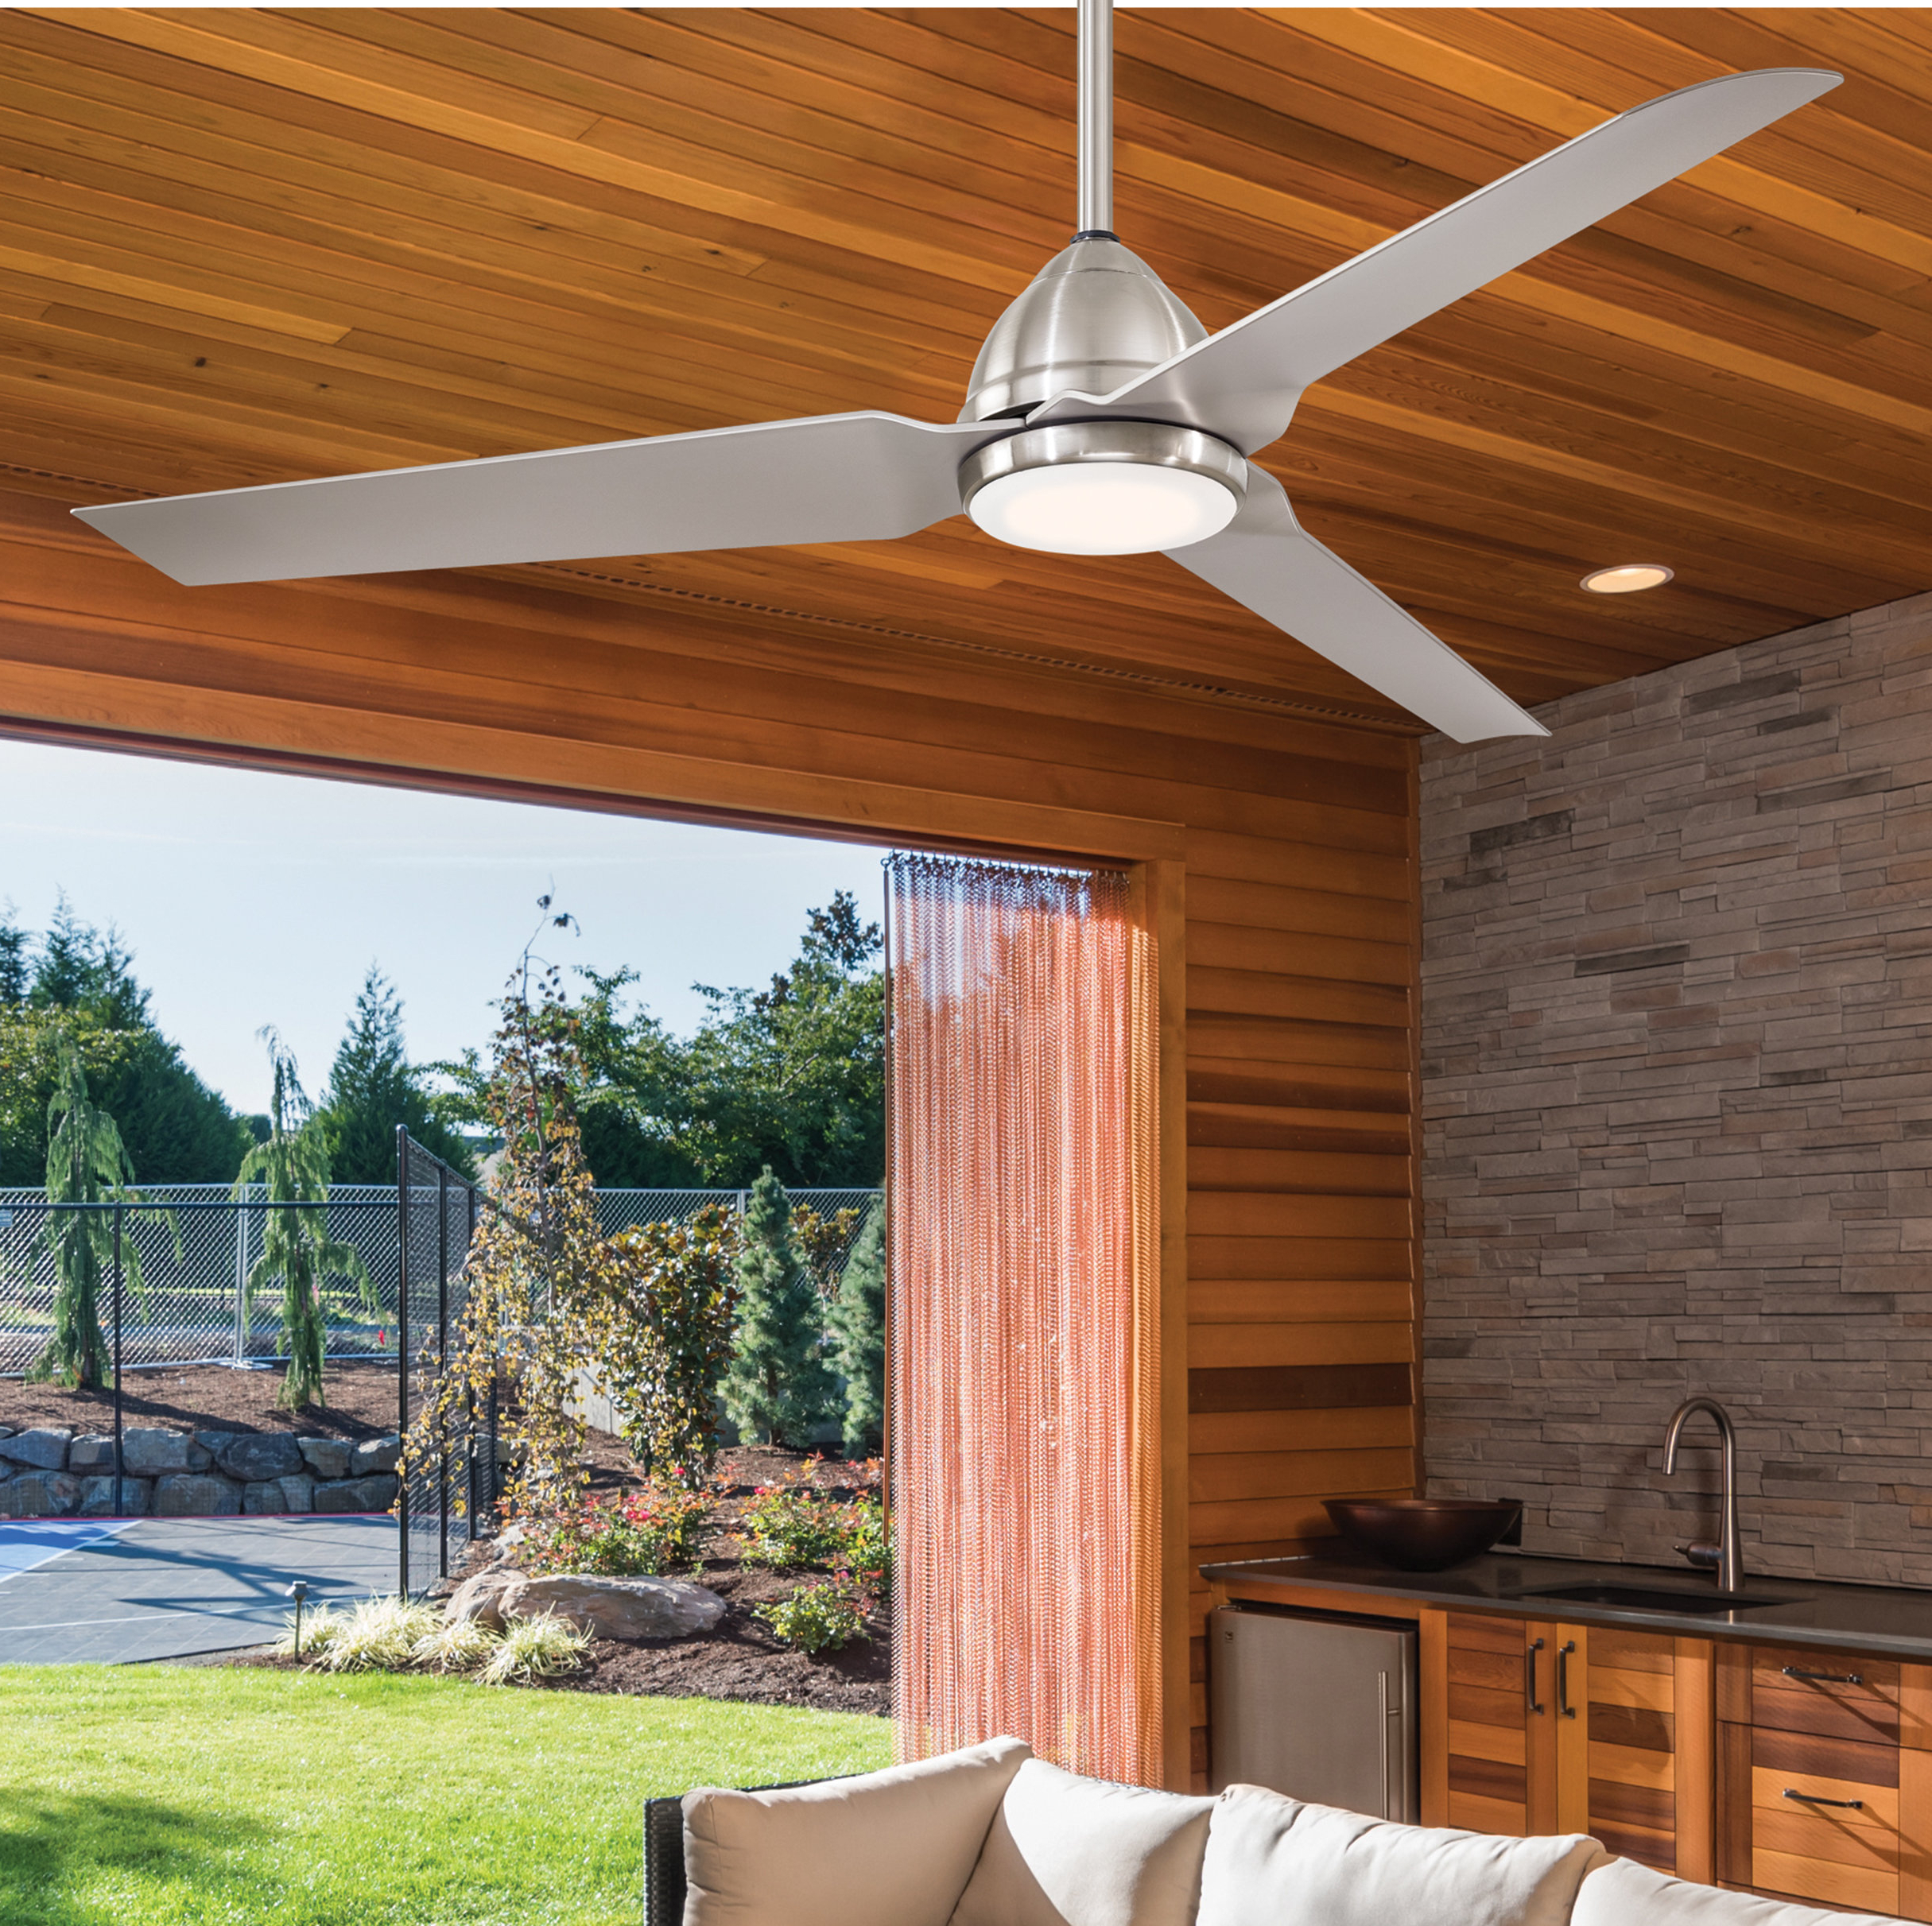 """54"""" Java 3 Blade Outdoor Led Ceiling Fan With Remote Intended For Popular Java 3 Blade Outdoor Led Ceiling Fans (View 4 of 20)"""